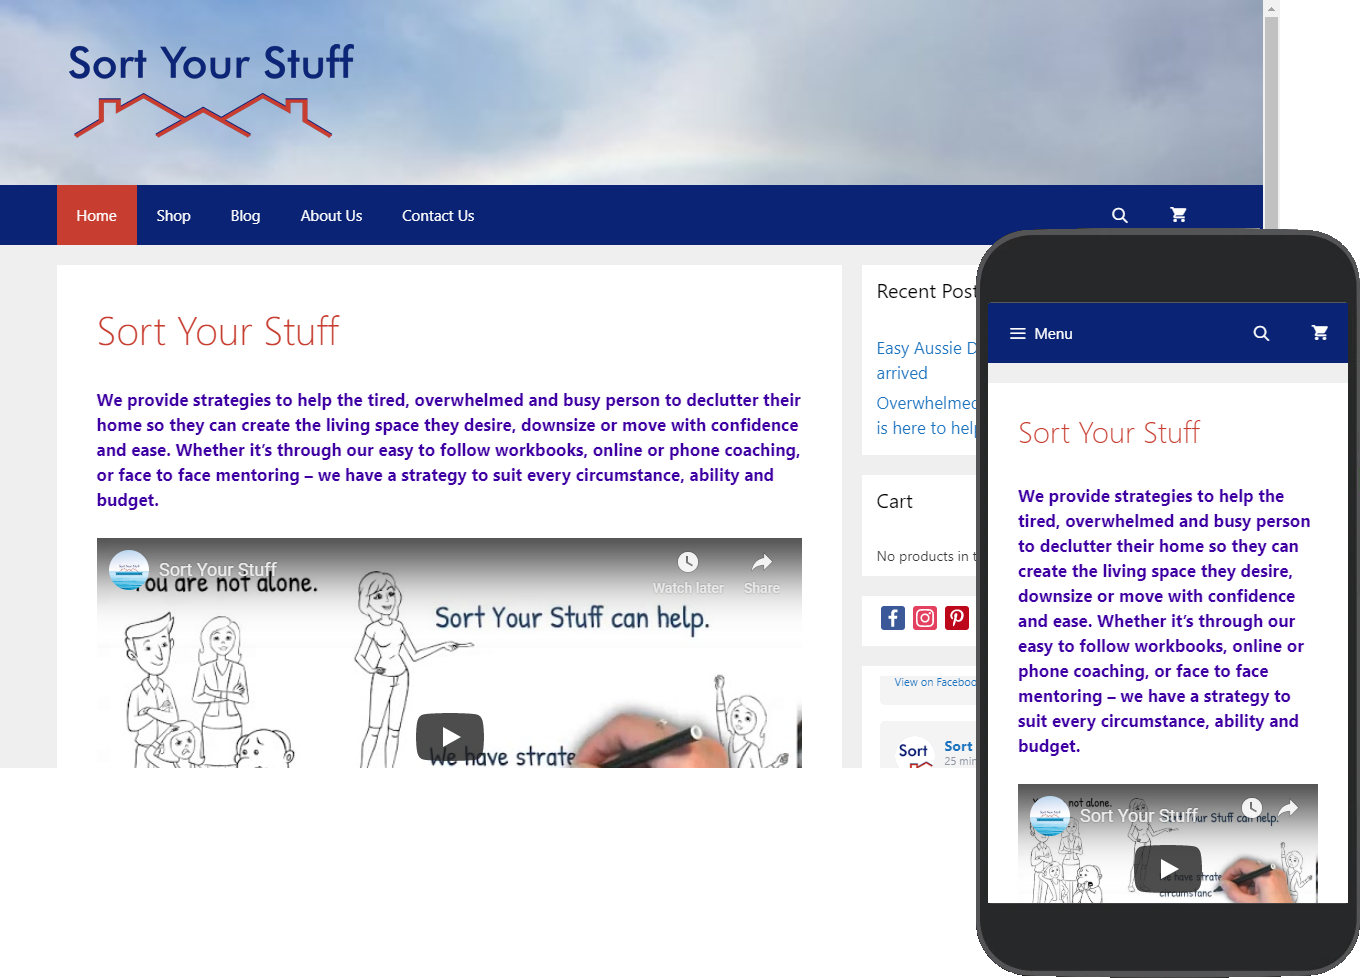 Sort Your Stuff website portfolio images of desktop and mobile view